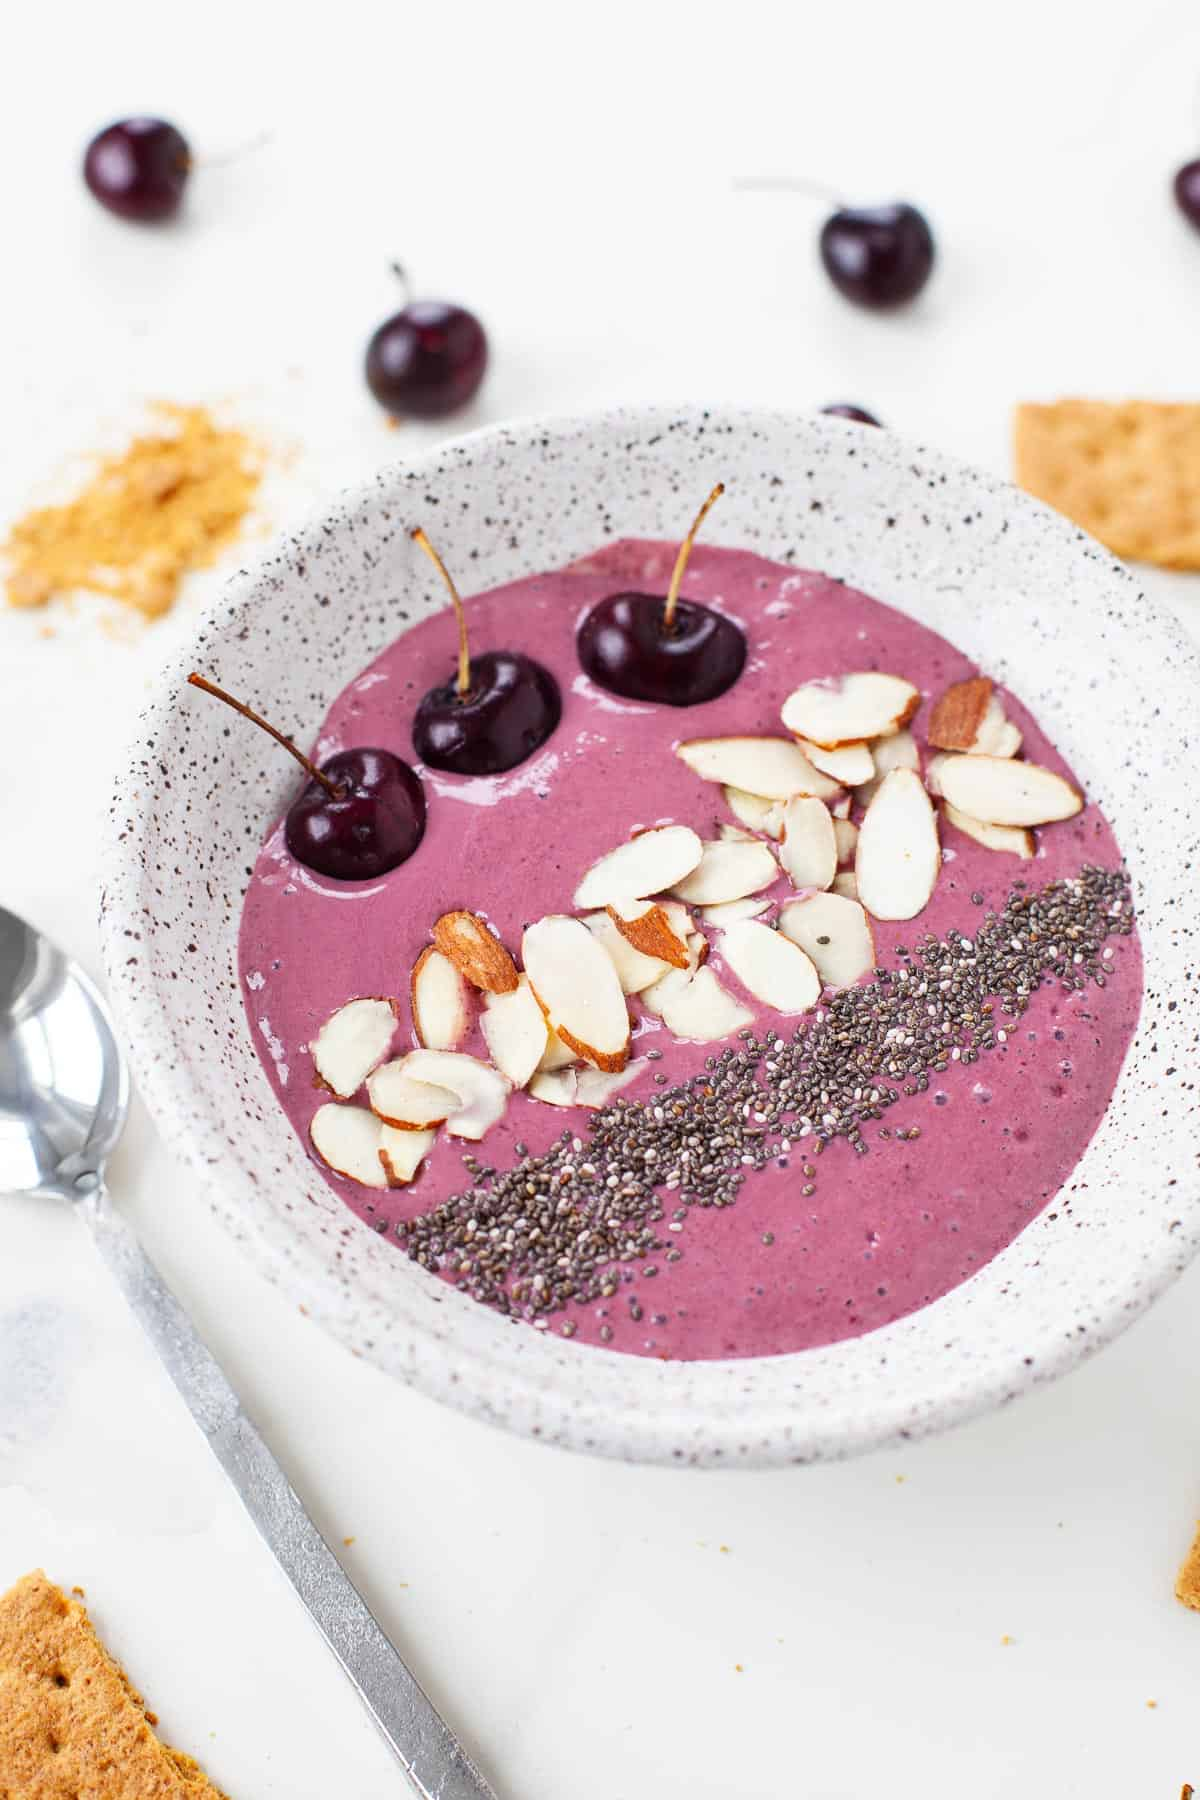 cherry cheesecake smoothie bowl with cherries, almonds, chia seeds in speckled grey bowl with graham crackers